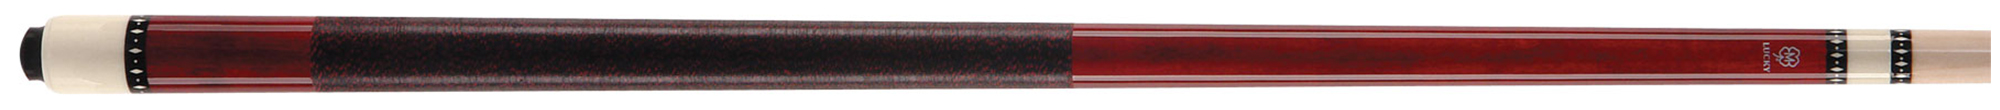 PK3071-6: Lucky L6 Red with Irish Linen handle by McDermott #1